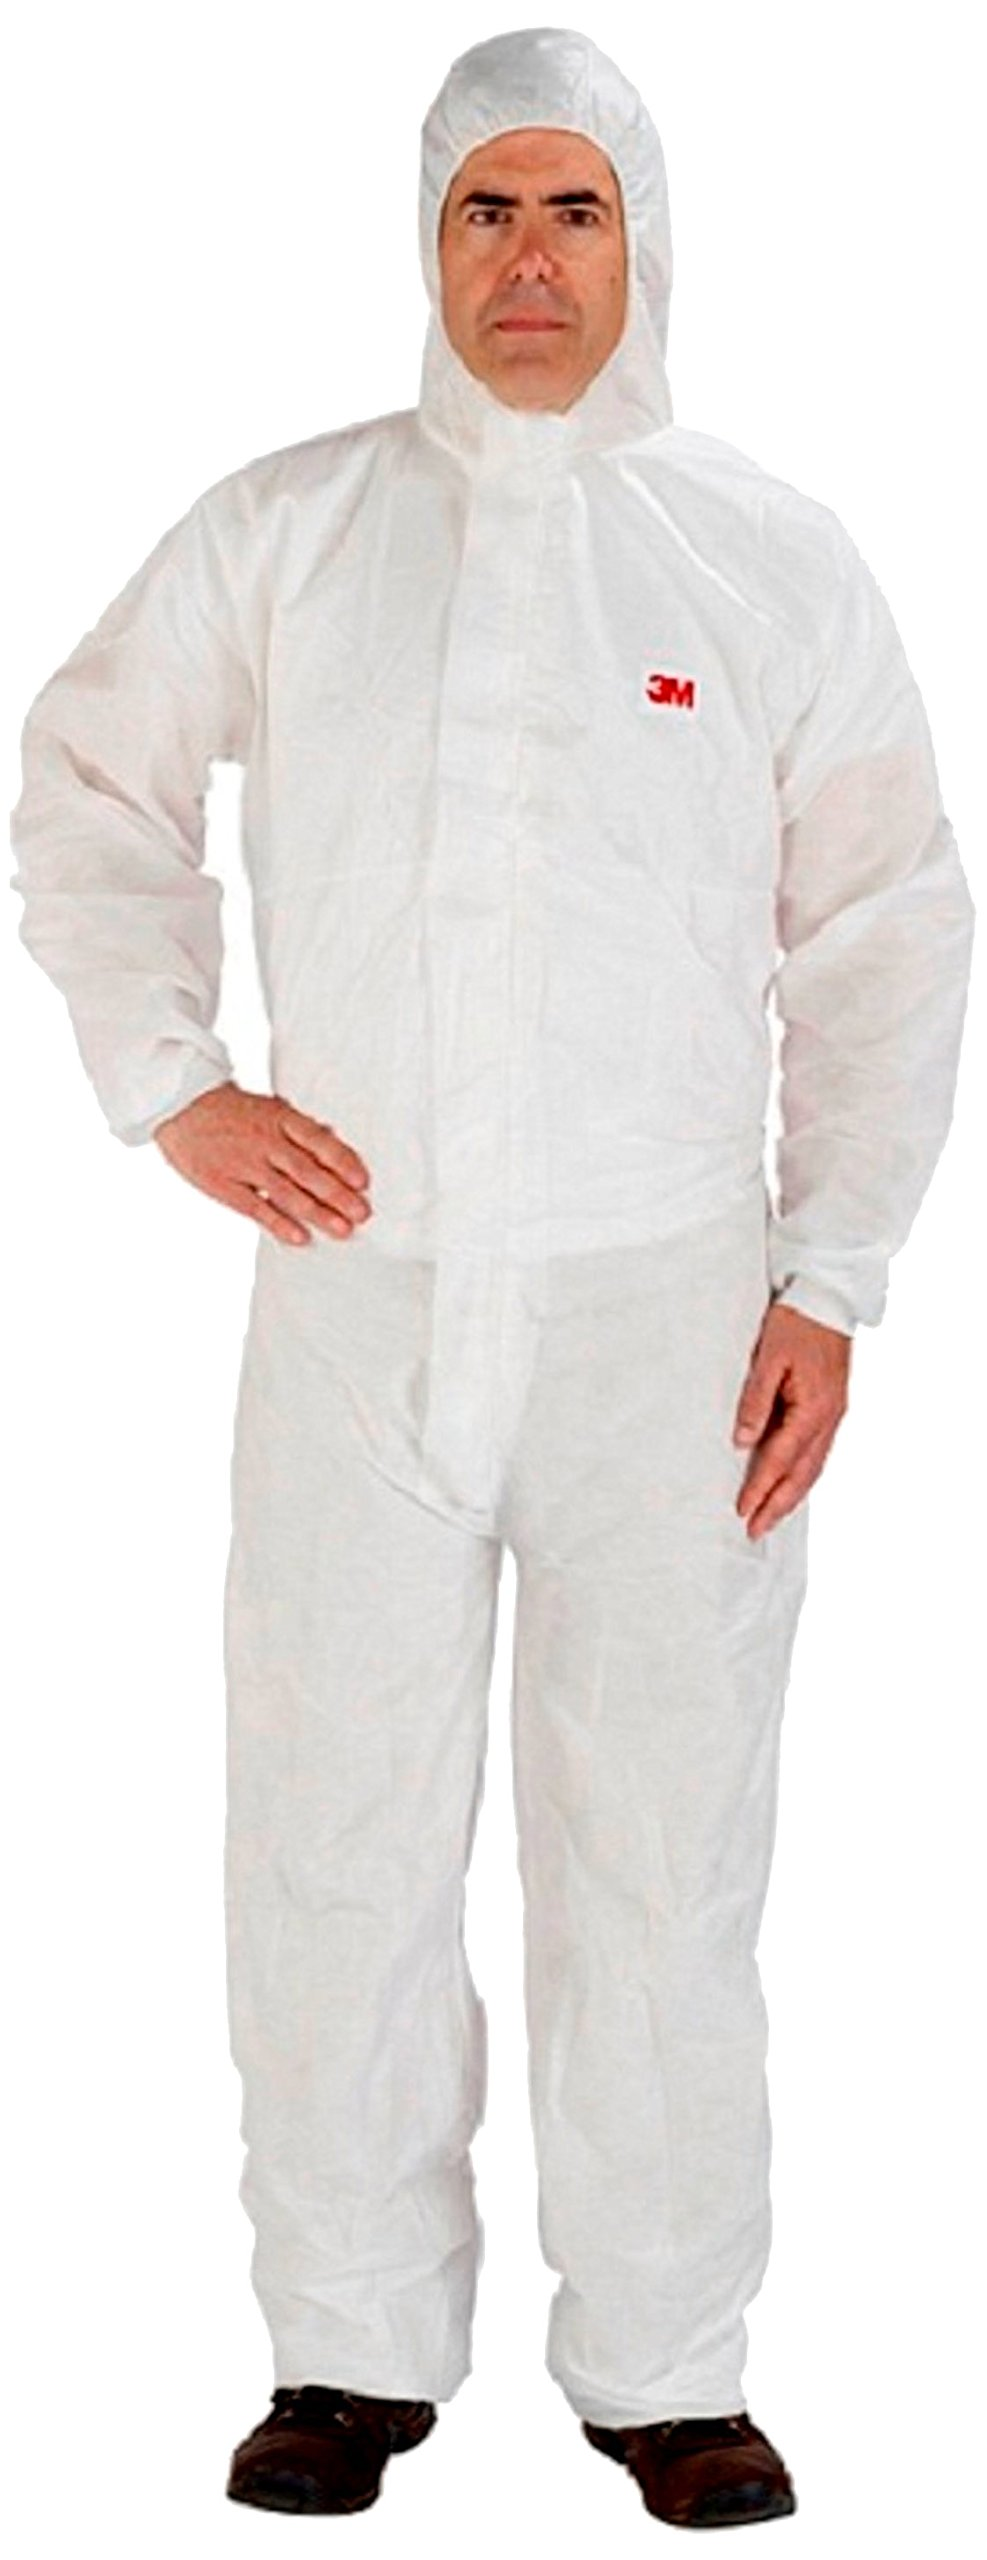 3M/COMMERCIAL TAPE DIV. DISPOSABLE PROTECTIVE COVERALLS, WHITE, X-LARGE, 25/CARTON